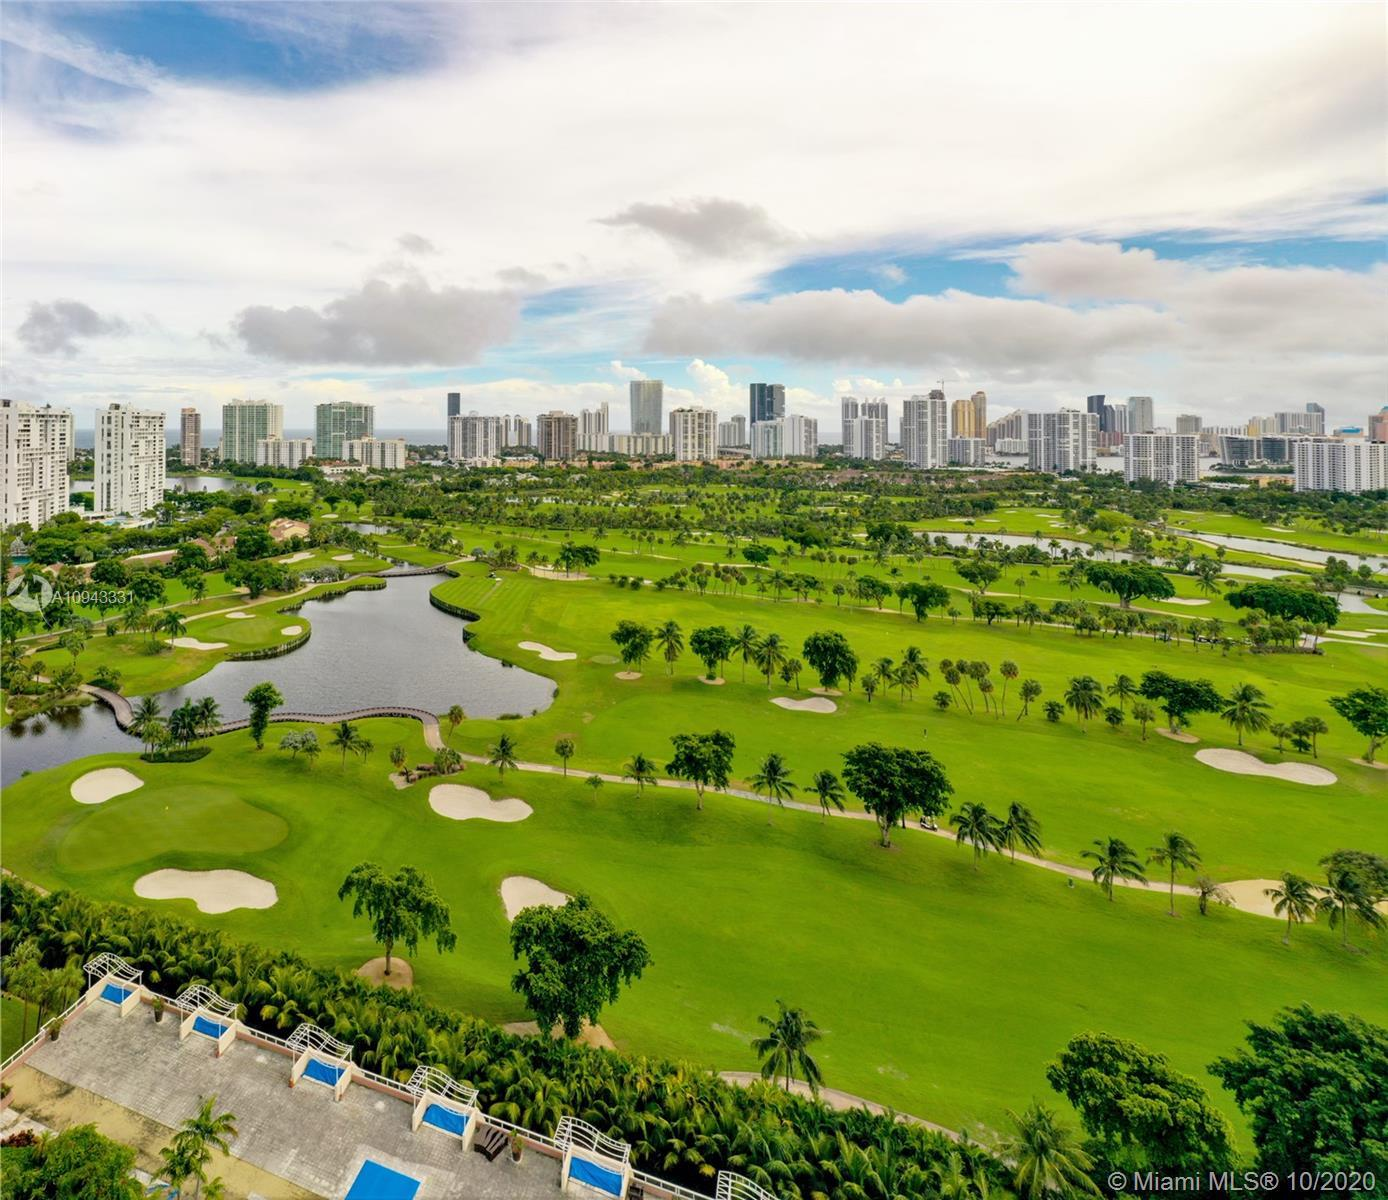 CORONADO TOWERS IN THE HEART OF AVENTURA. BREATHTAKING, PANORAMIC VIEWS MAKE THIS A MUST SEE APT! ST